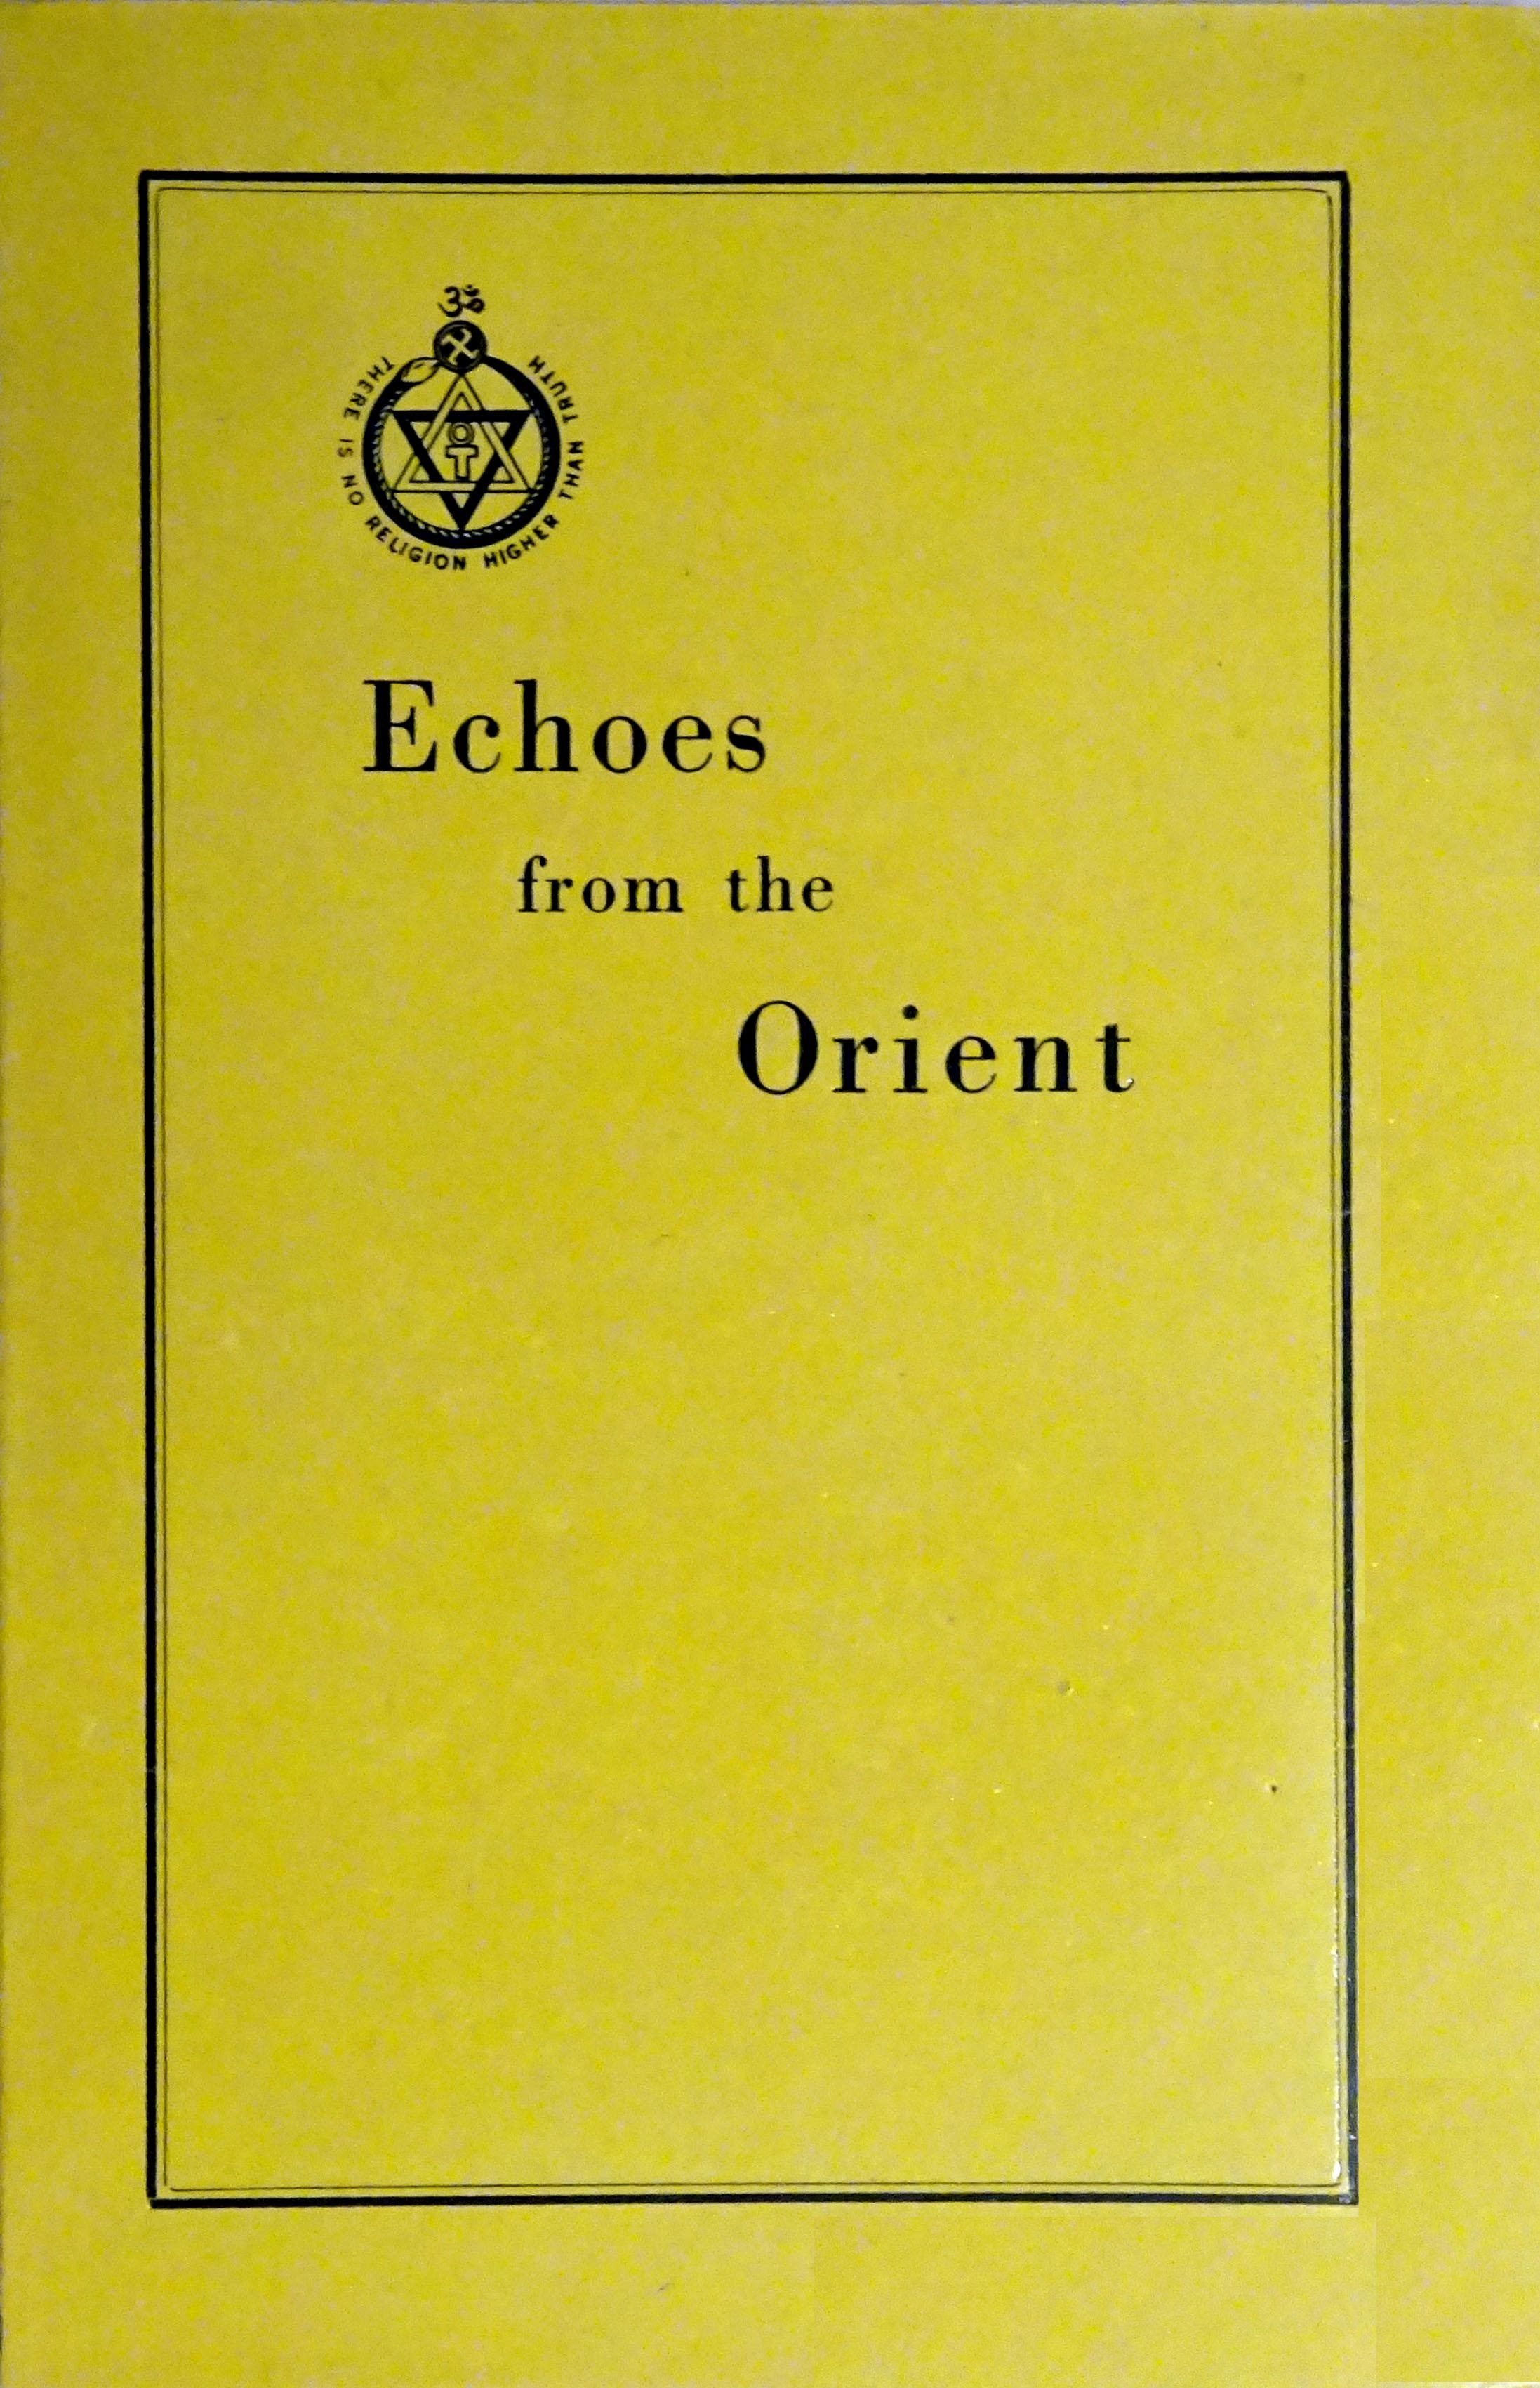 Echoes from the Orient picture